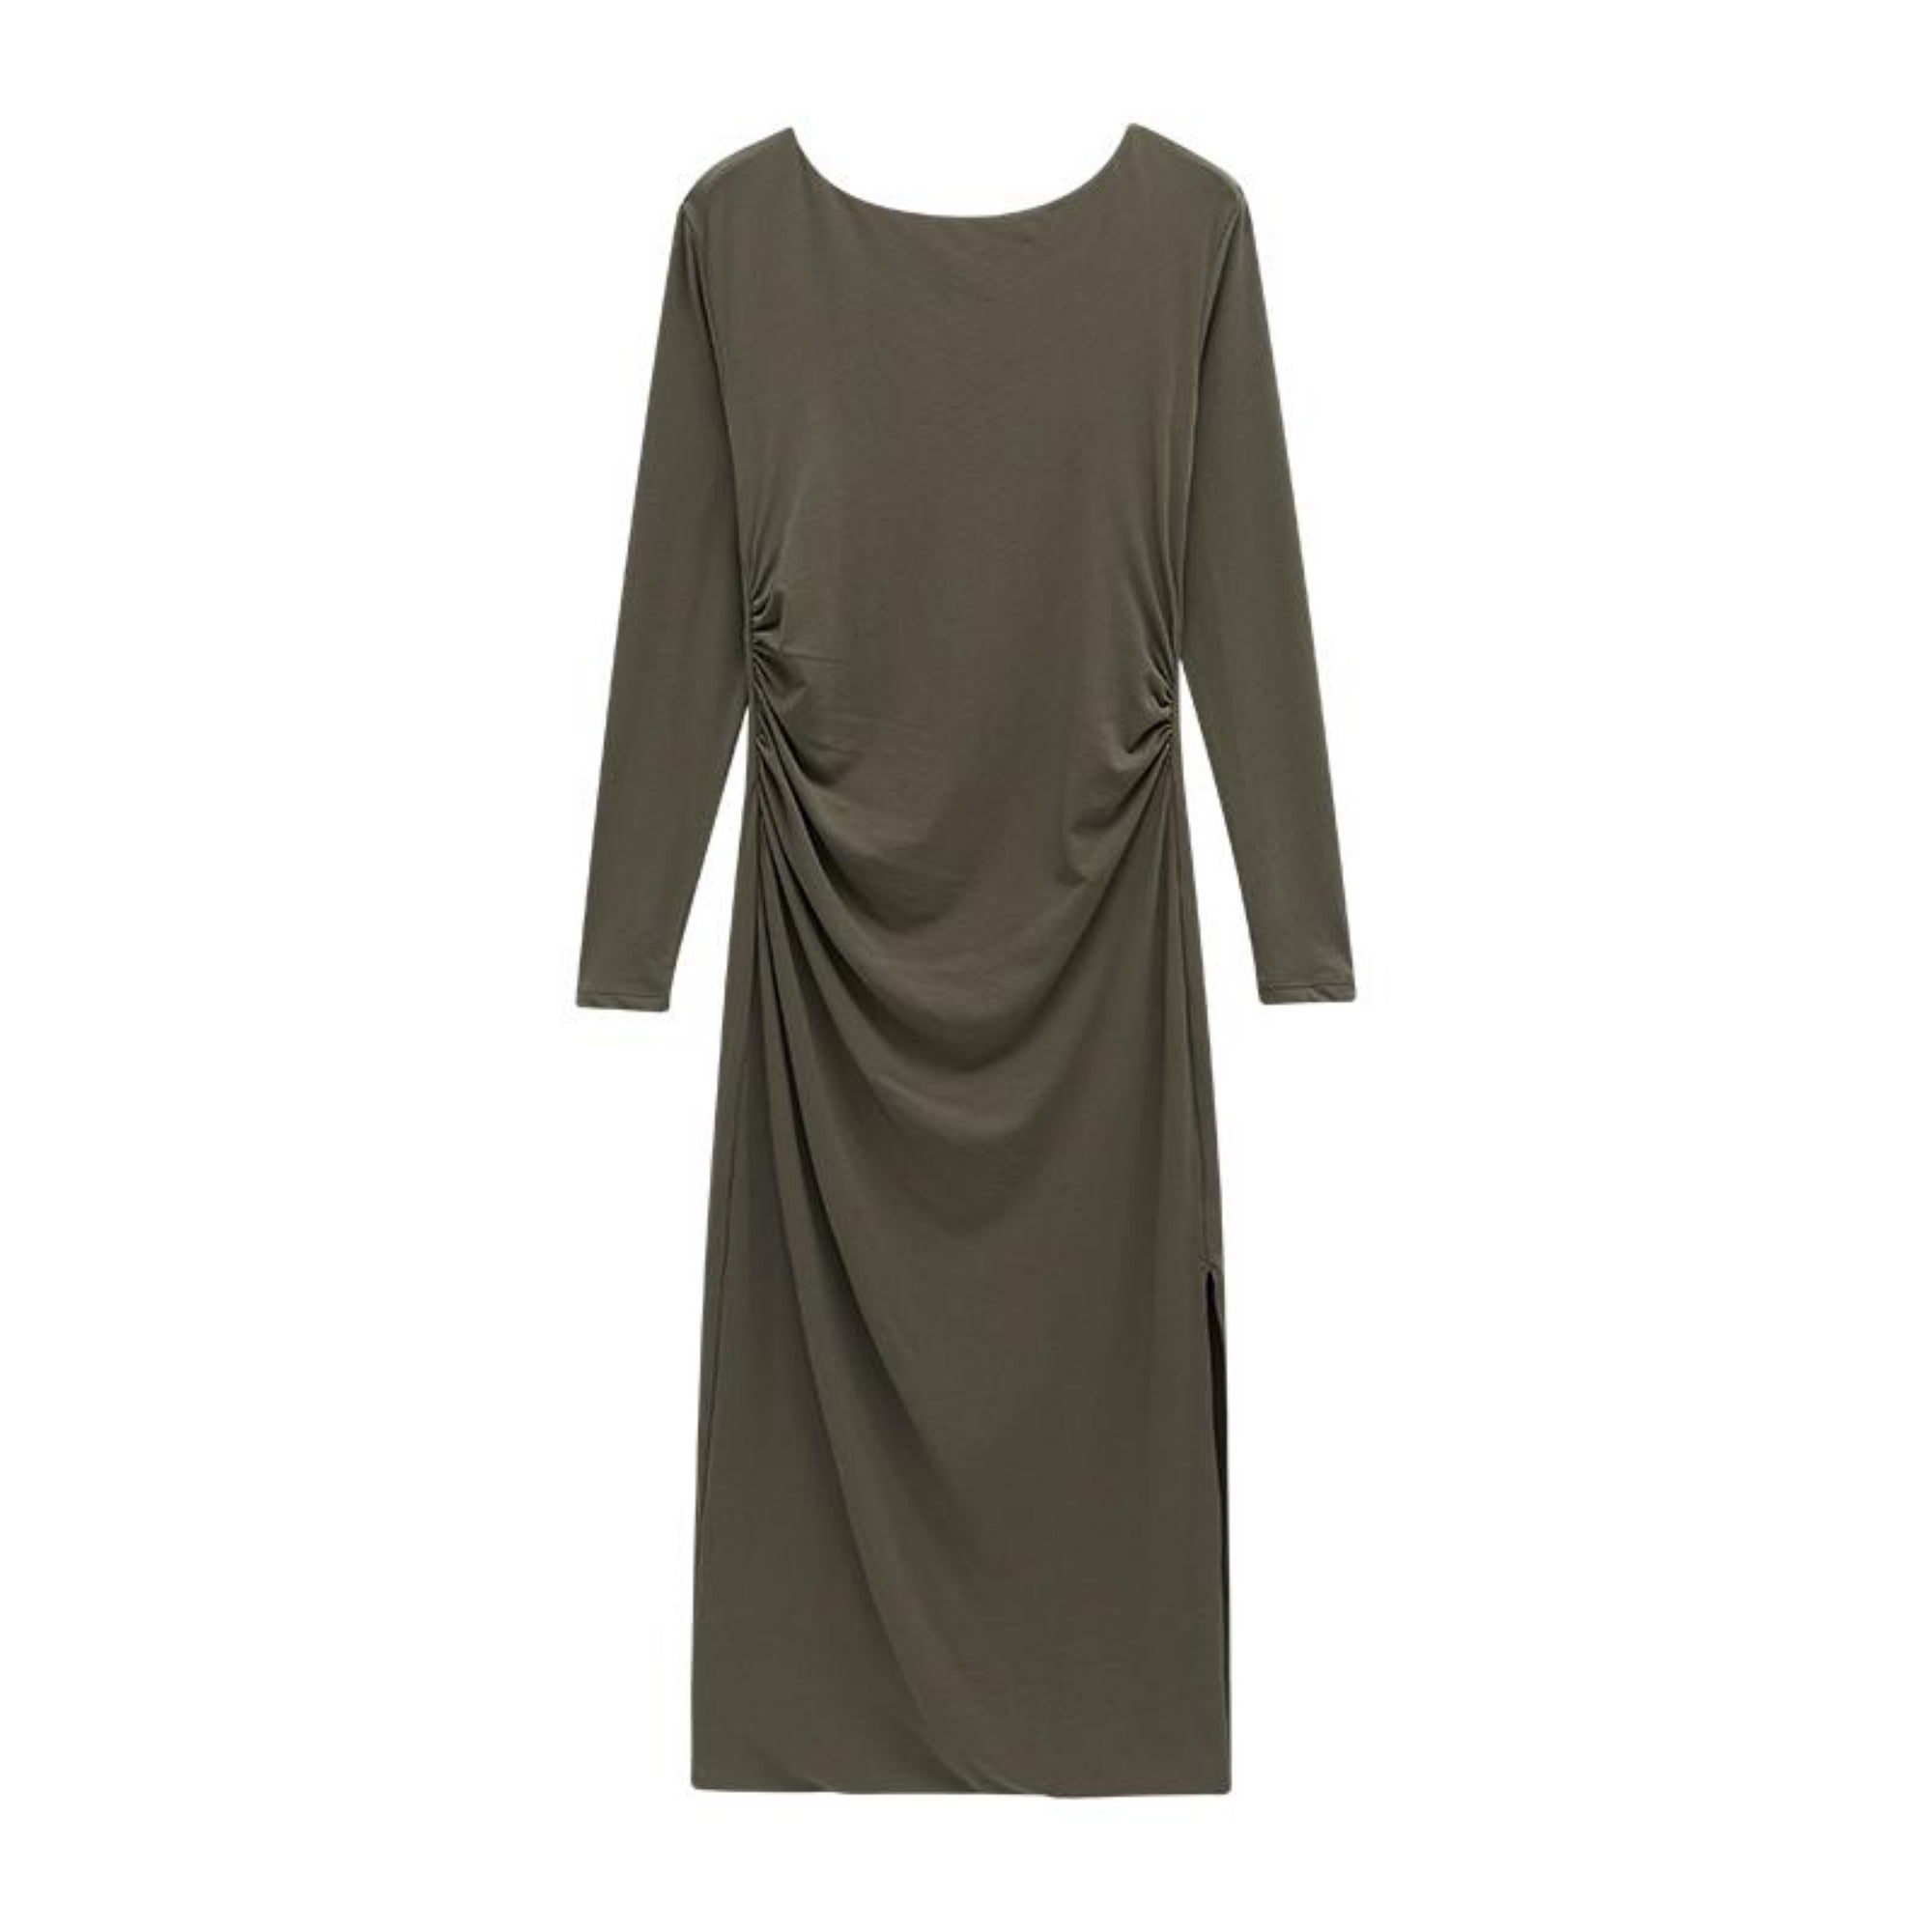 NEIWAI's Boundless Cotton Backless Dress in Gunmetal.